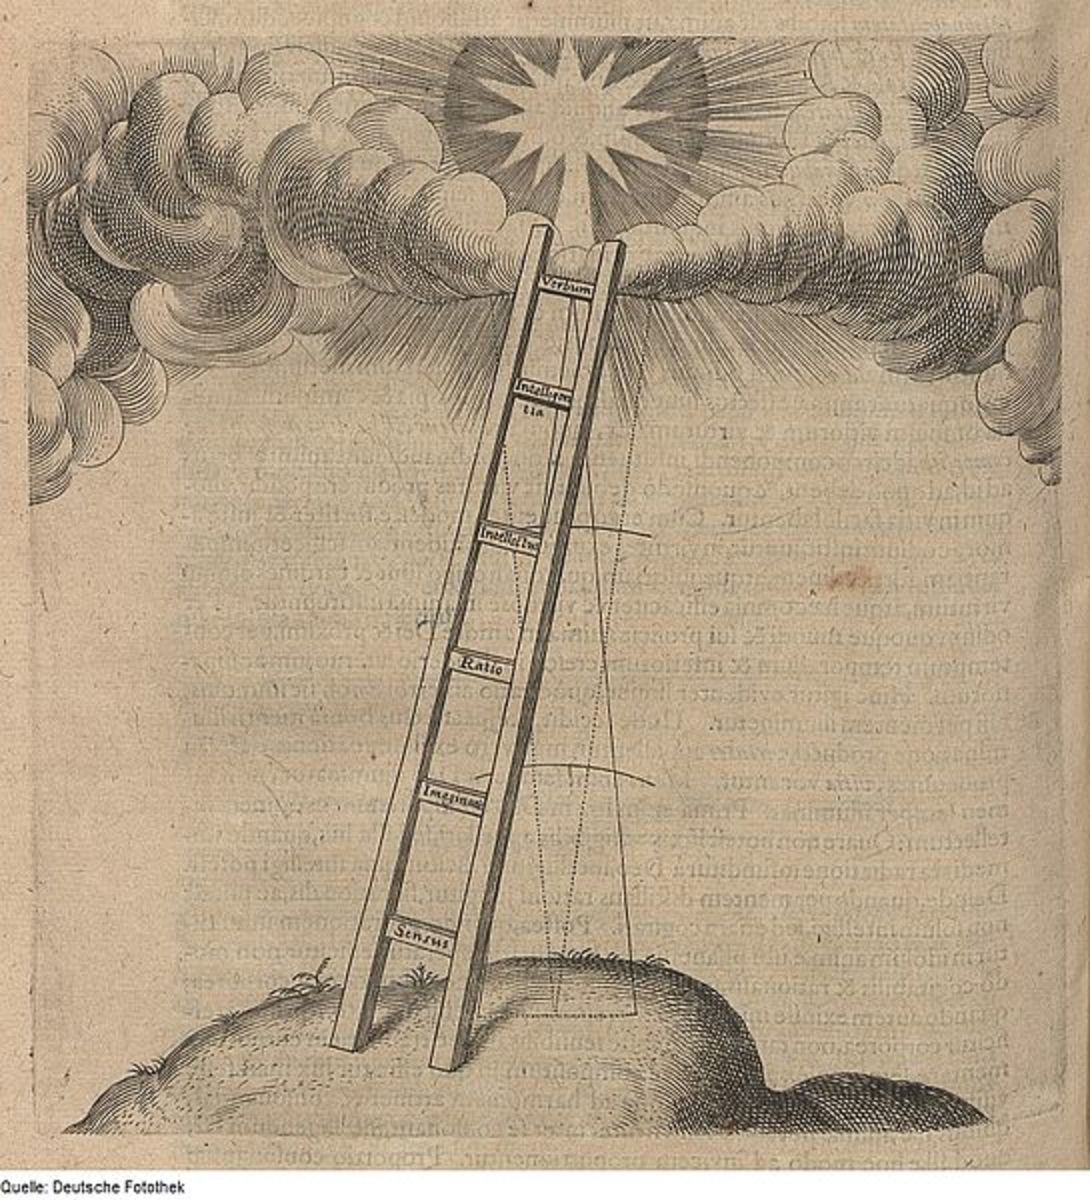 Walking under ladders is more than just dangerous for some superstitious people.